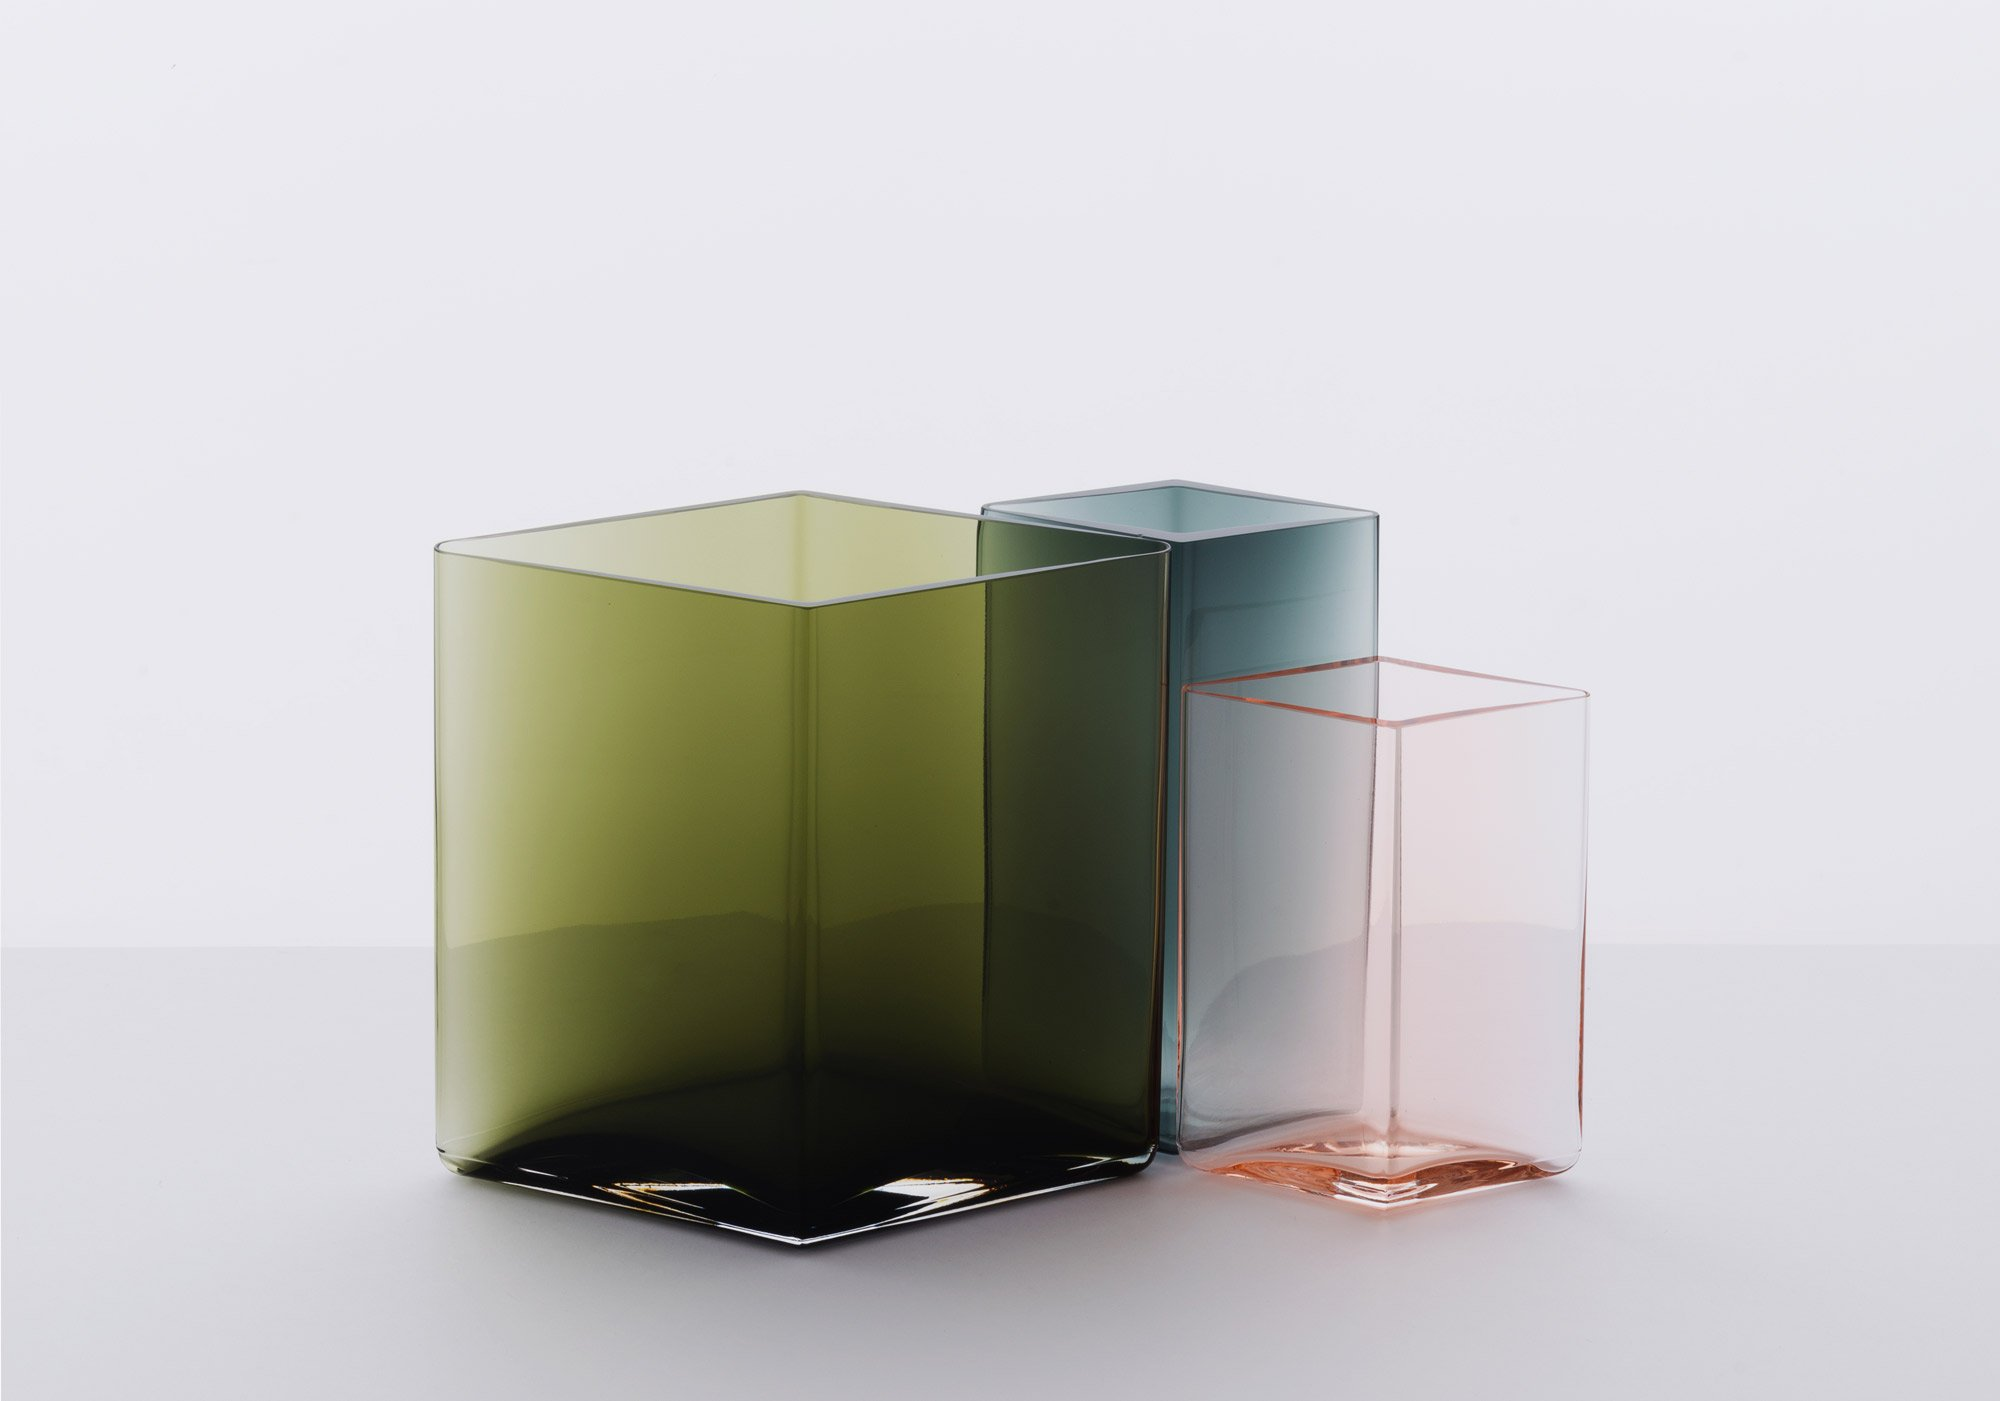 Bouroullec : a simple, direct approach